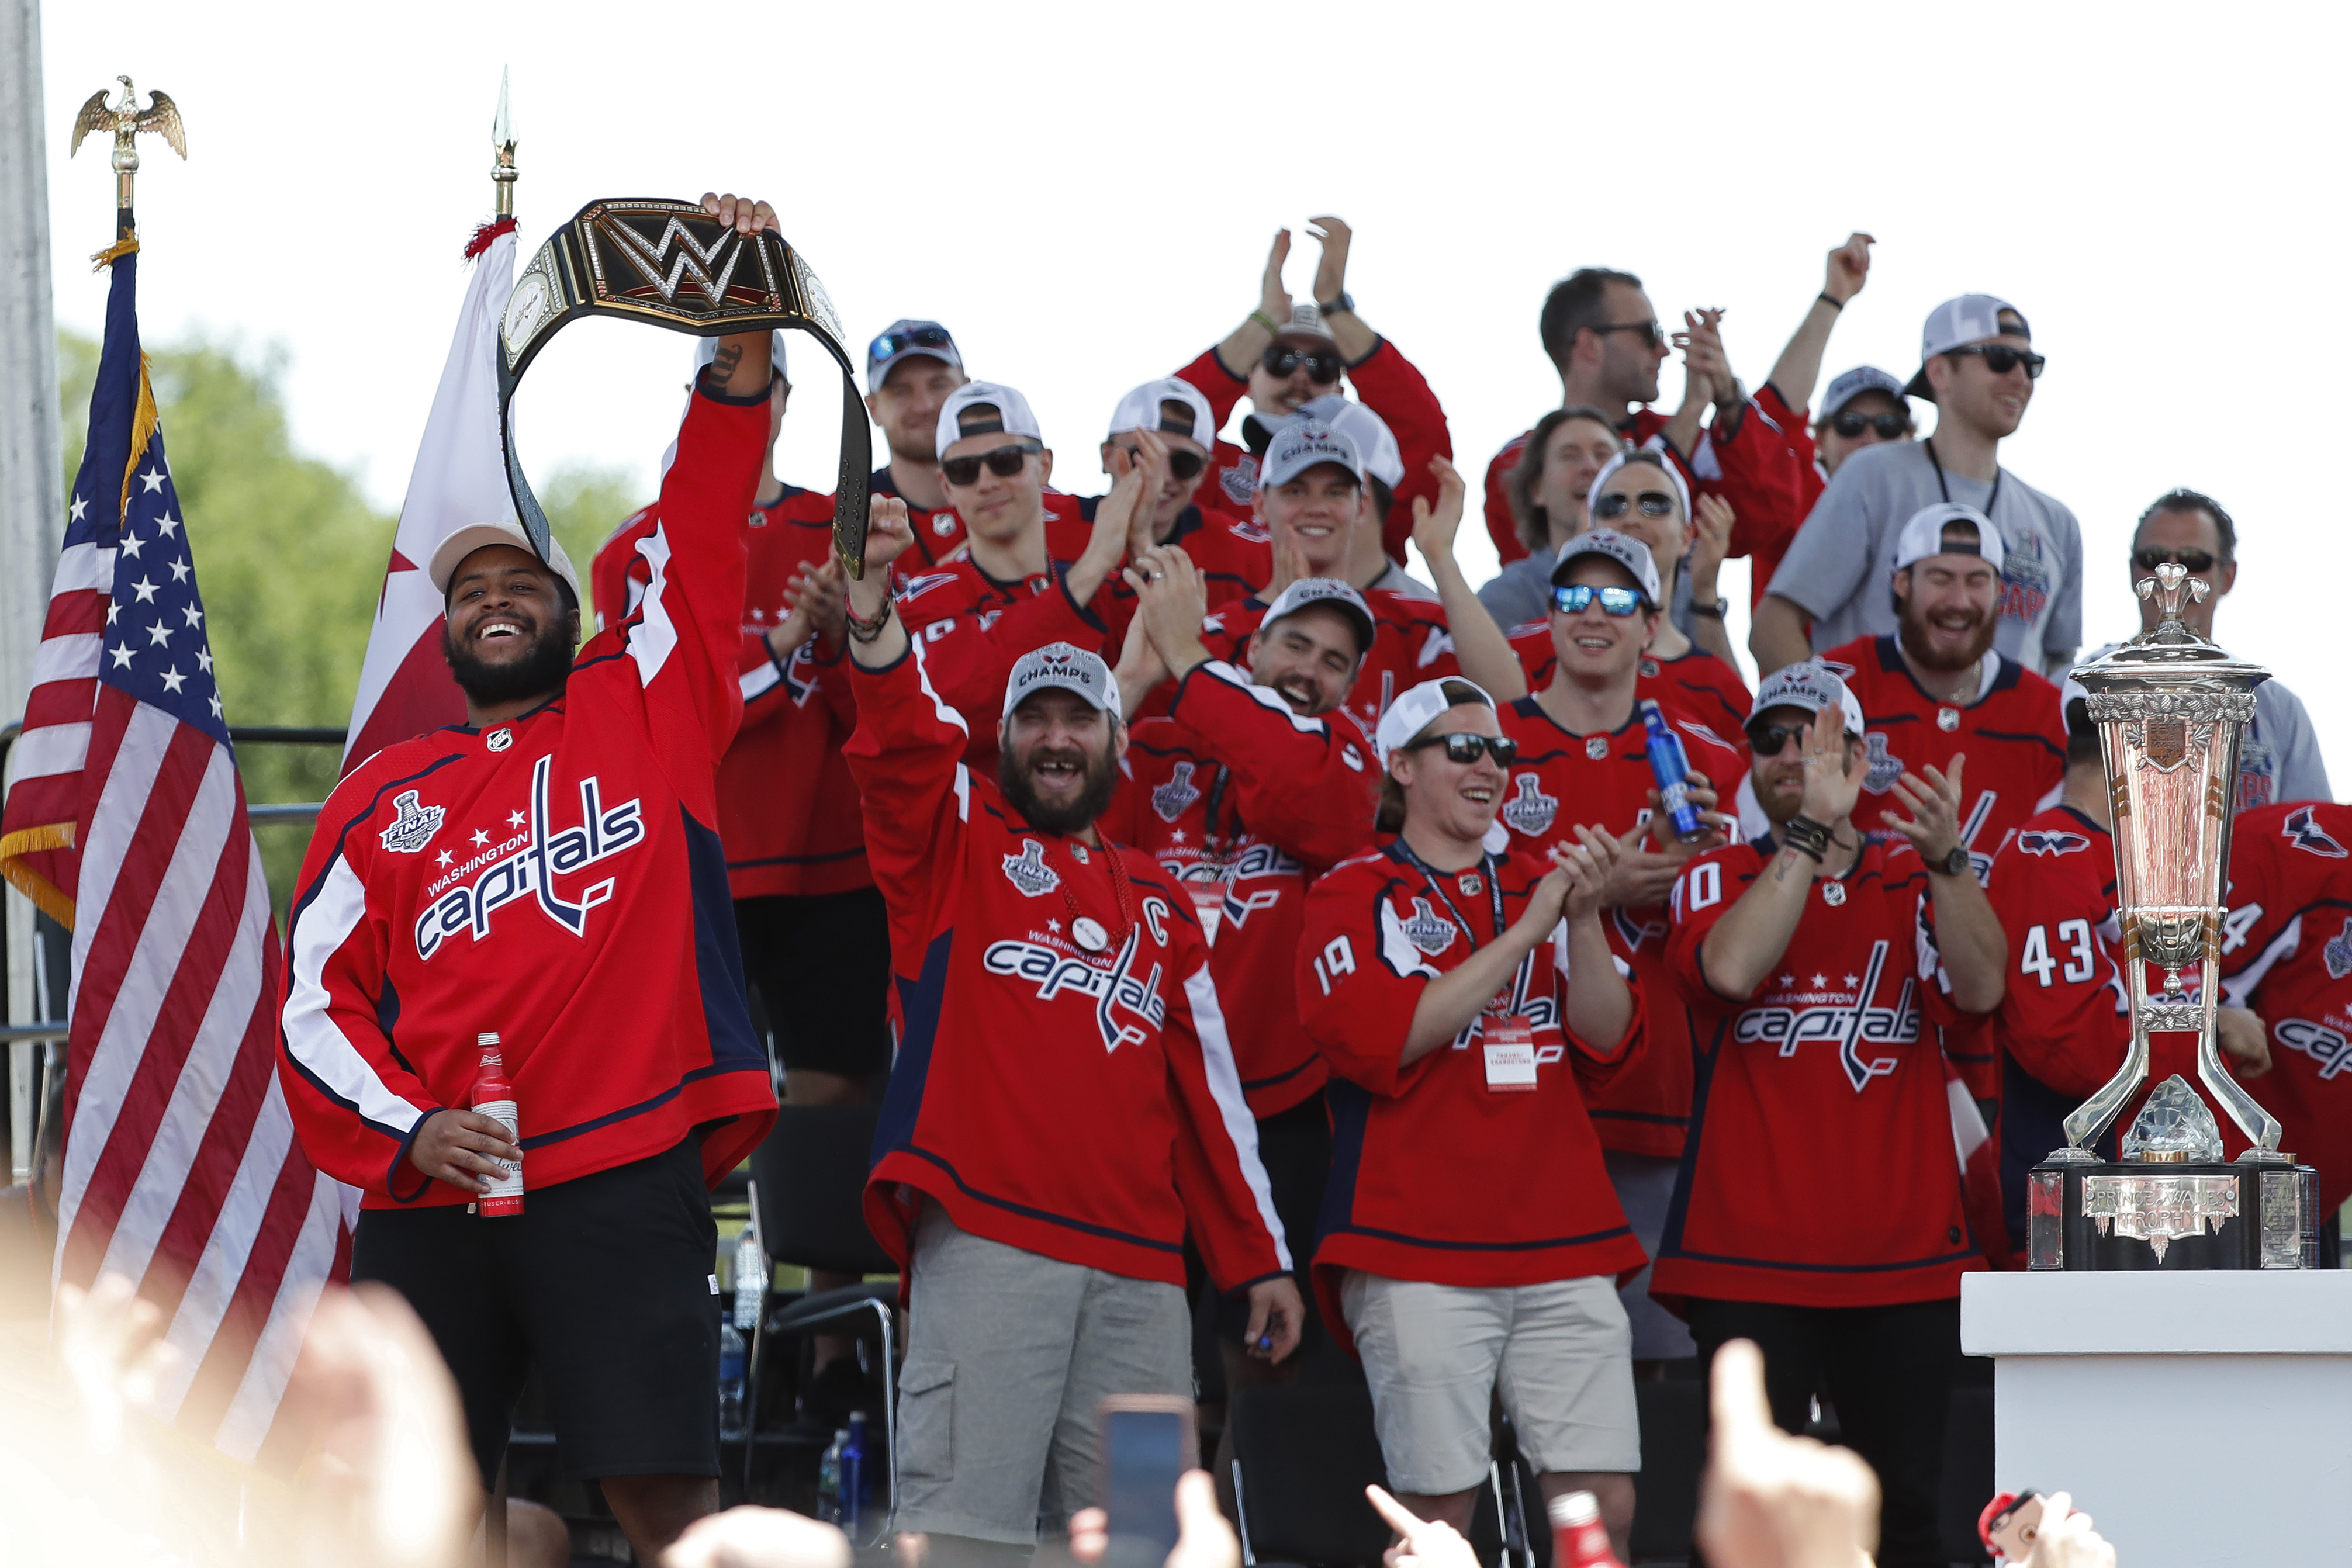 5ebad015a18 Washington Capitals right wing Devante Smith-Pelly (left) salutes the crowd  while being introduced during the Stanley Cup championship parade and ...